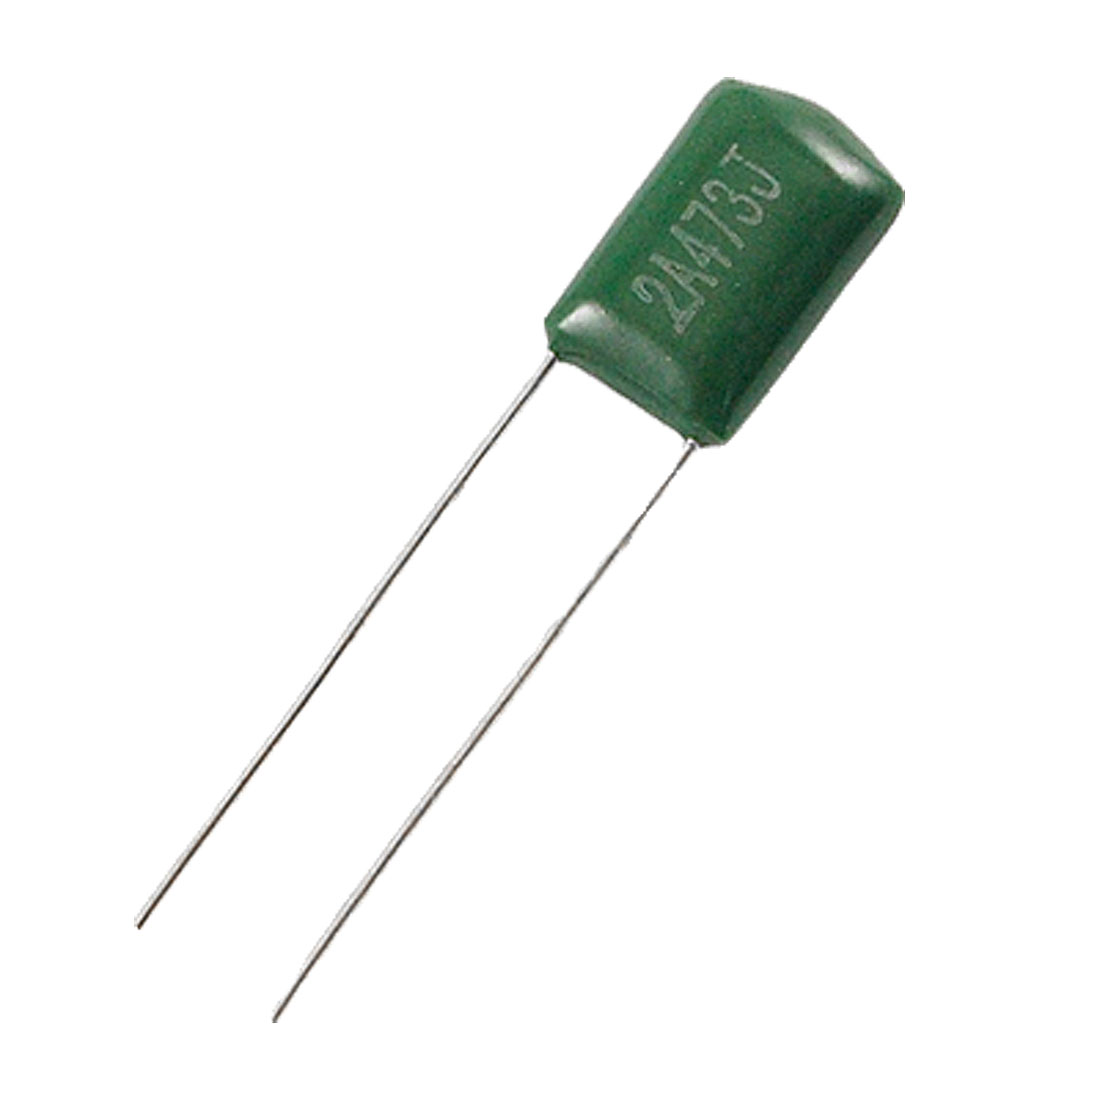 100 Pcs 2A473J 47000pF Mylar Polyester Film Capacitors